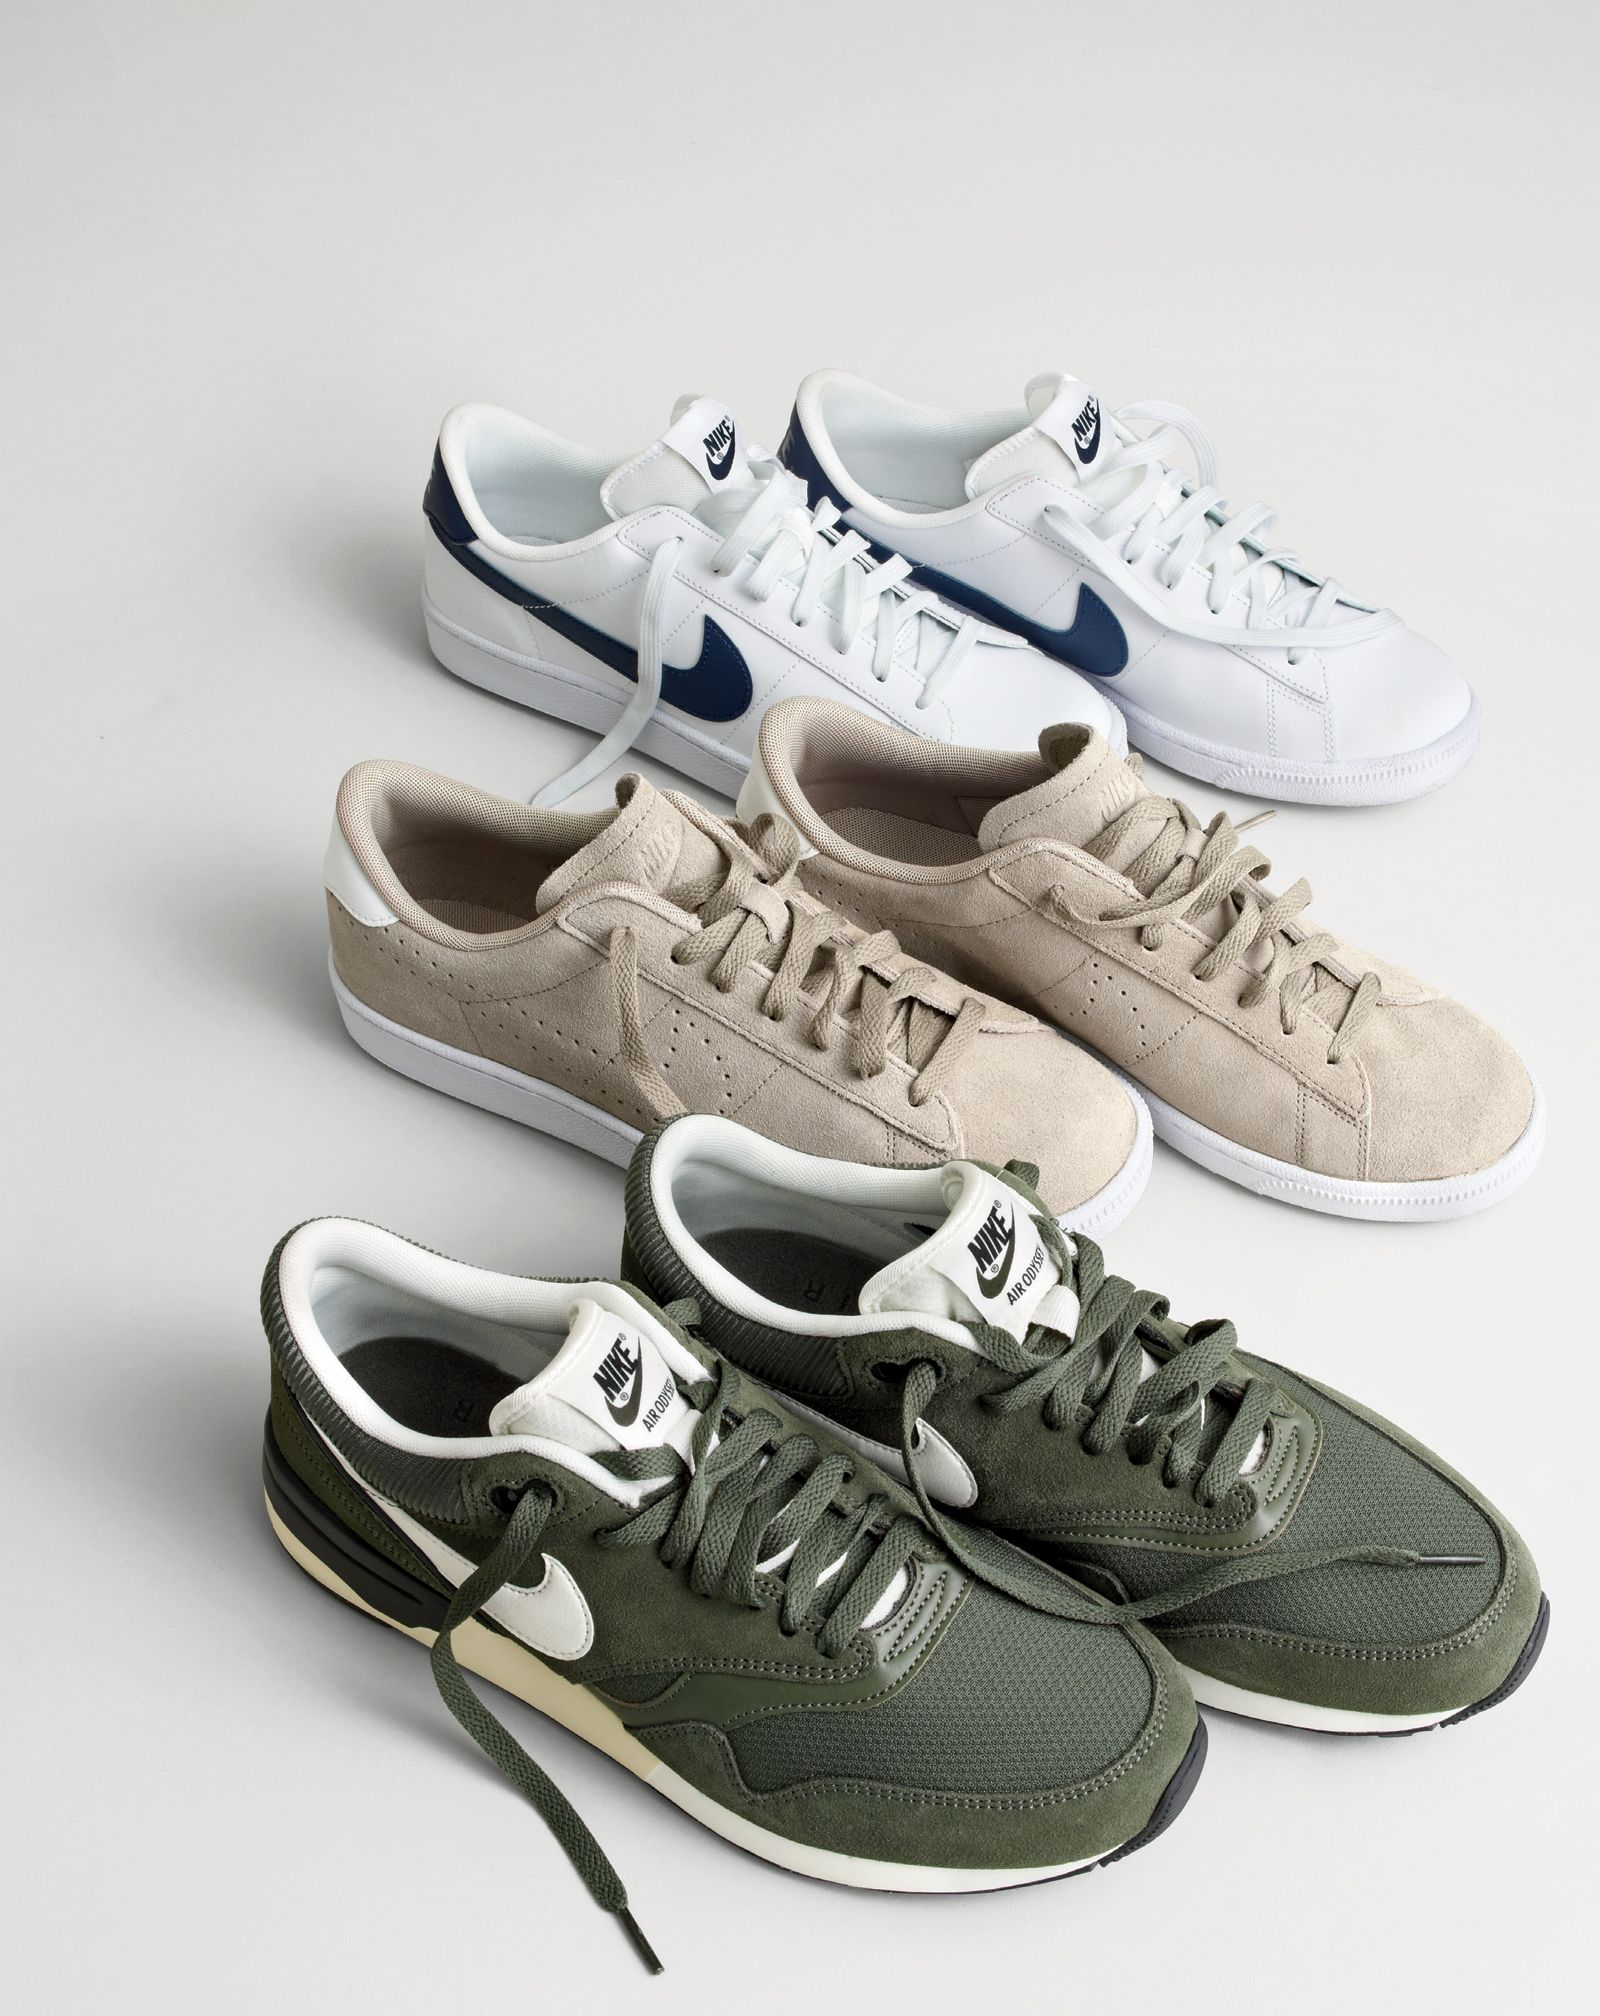 Sneakers outfit men, Sneakers fashion